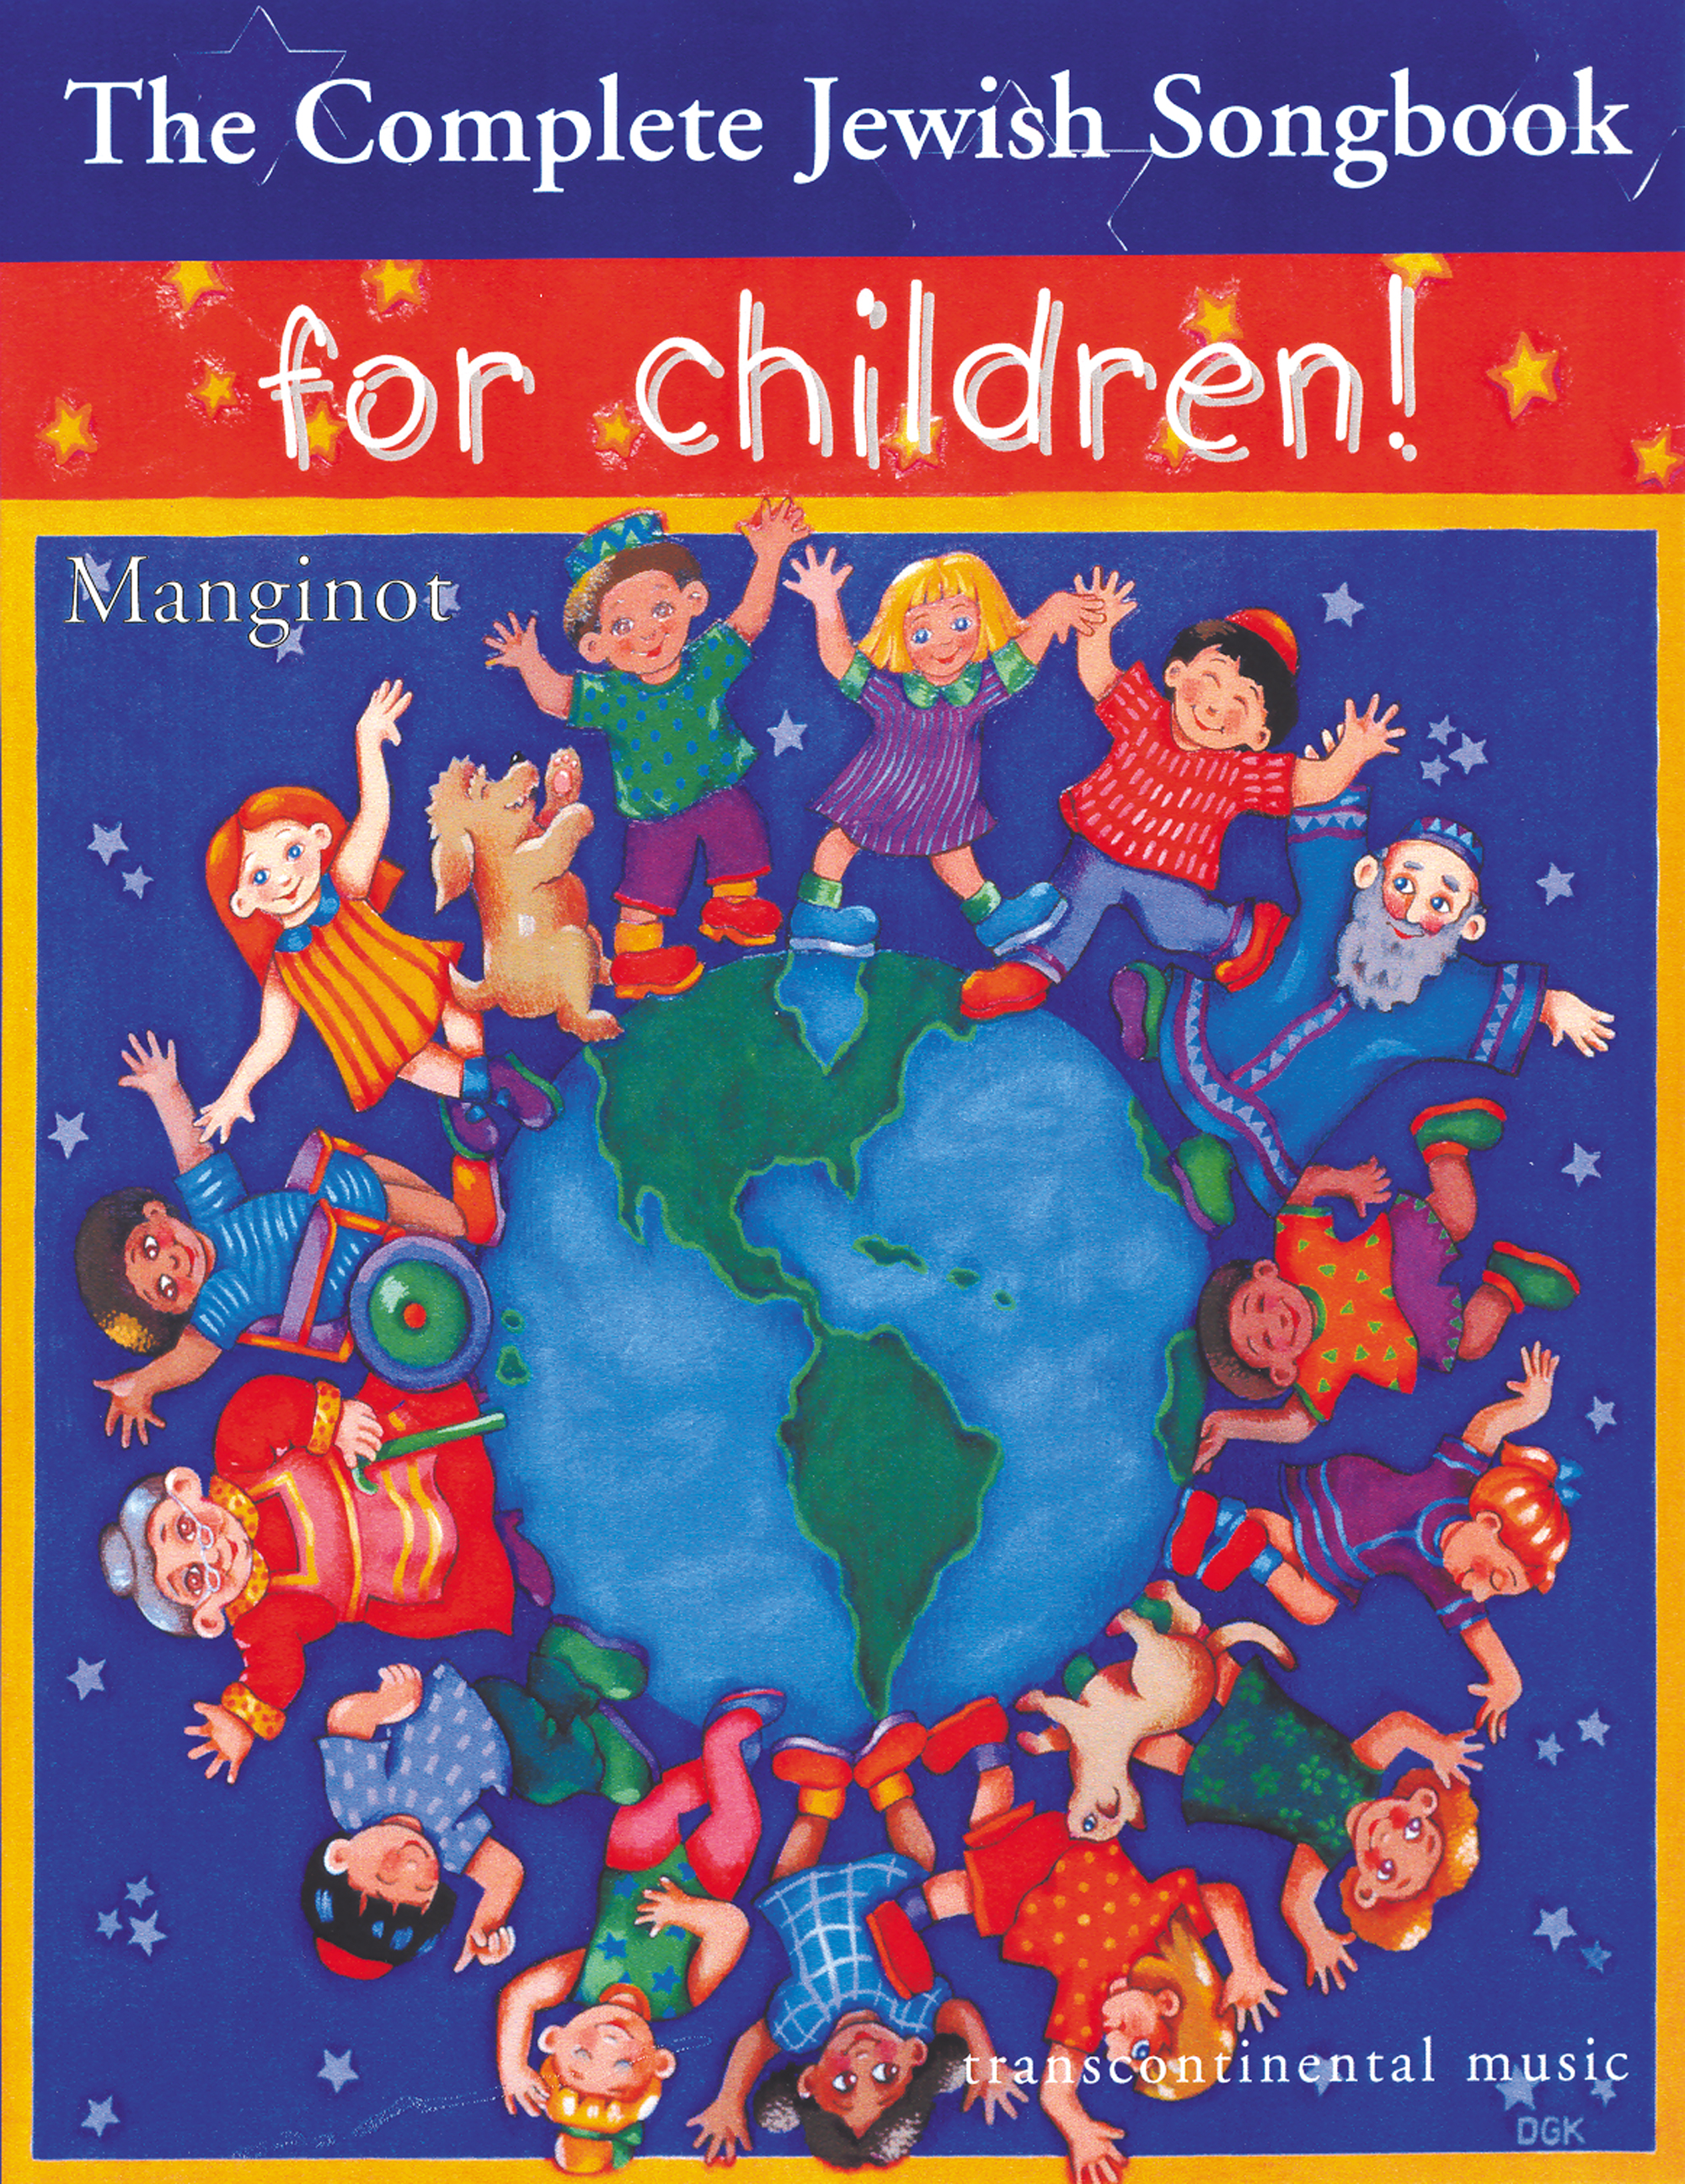 Comp-J-Songbook-4-Children.jpg